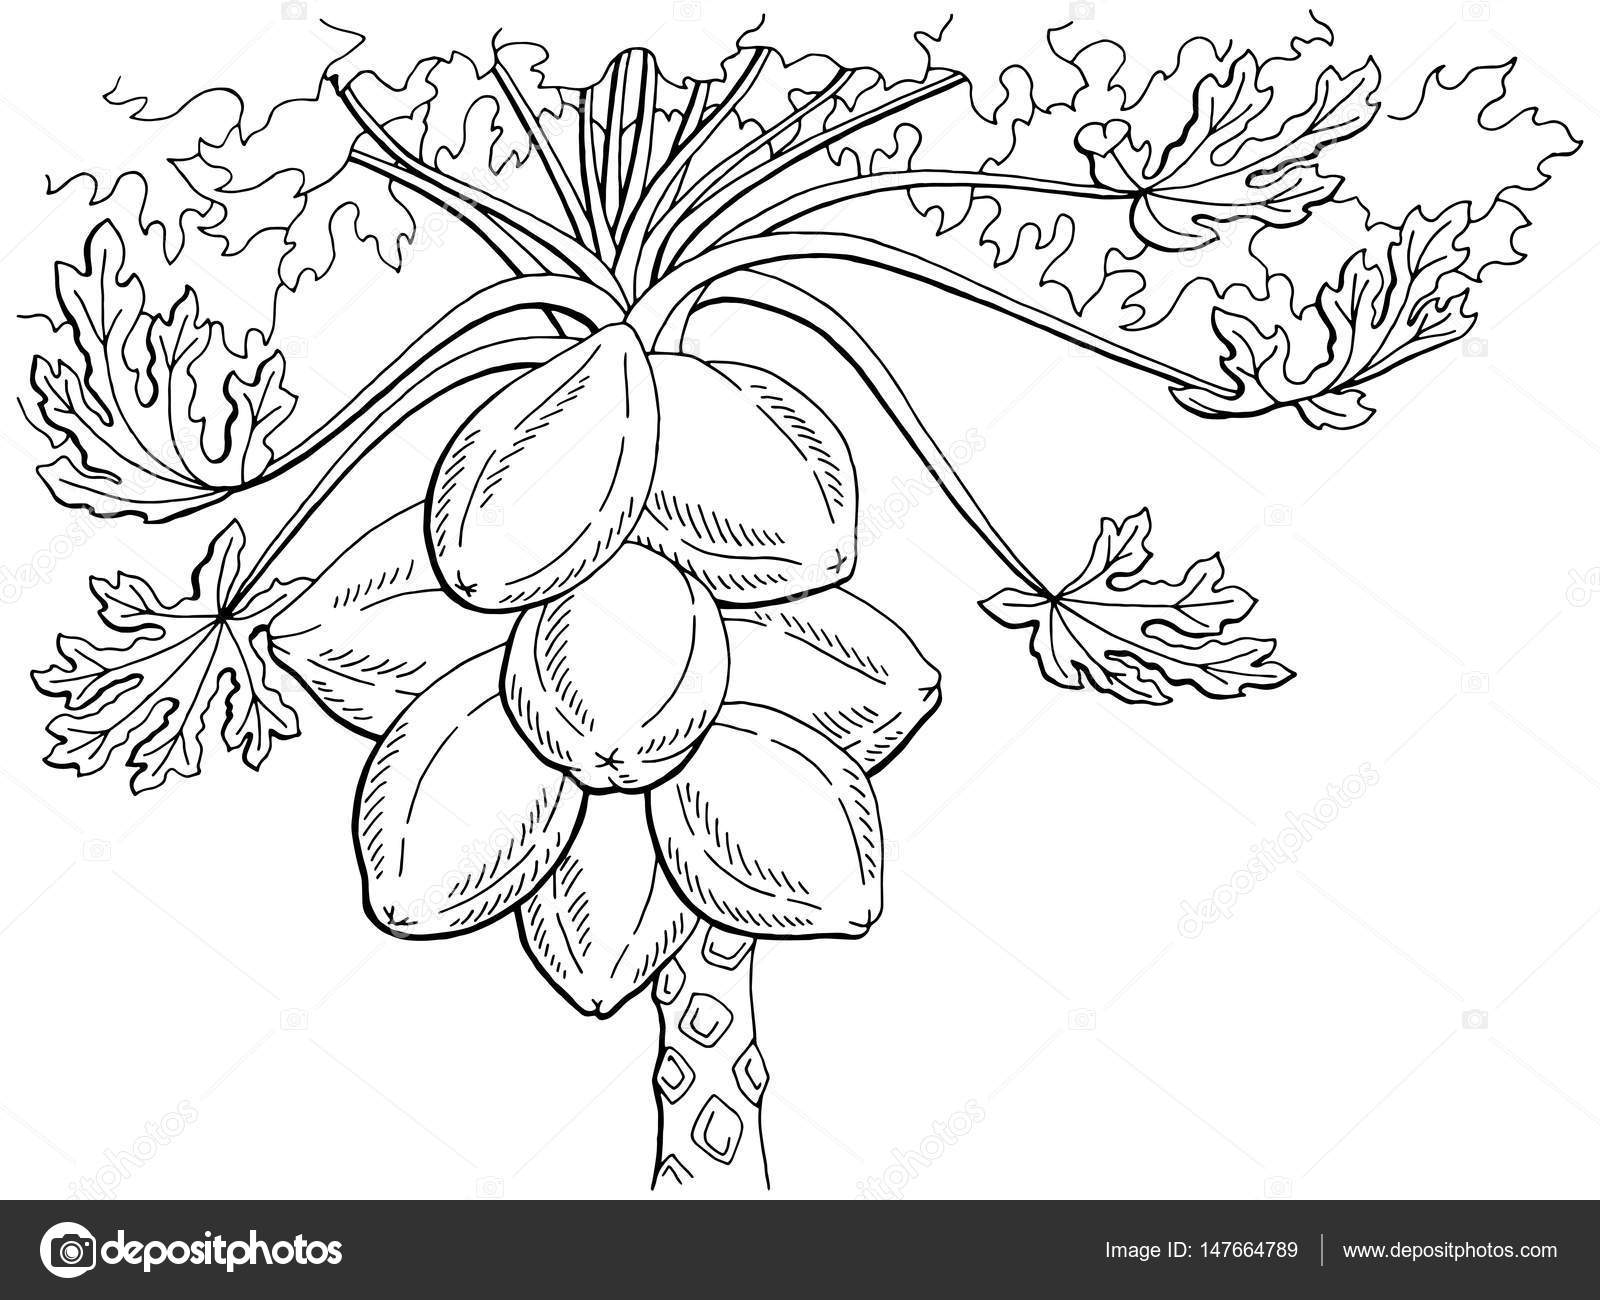 Papaya fruit tree graphic black white isolated sketch illustration vector stock vector